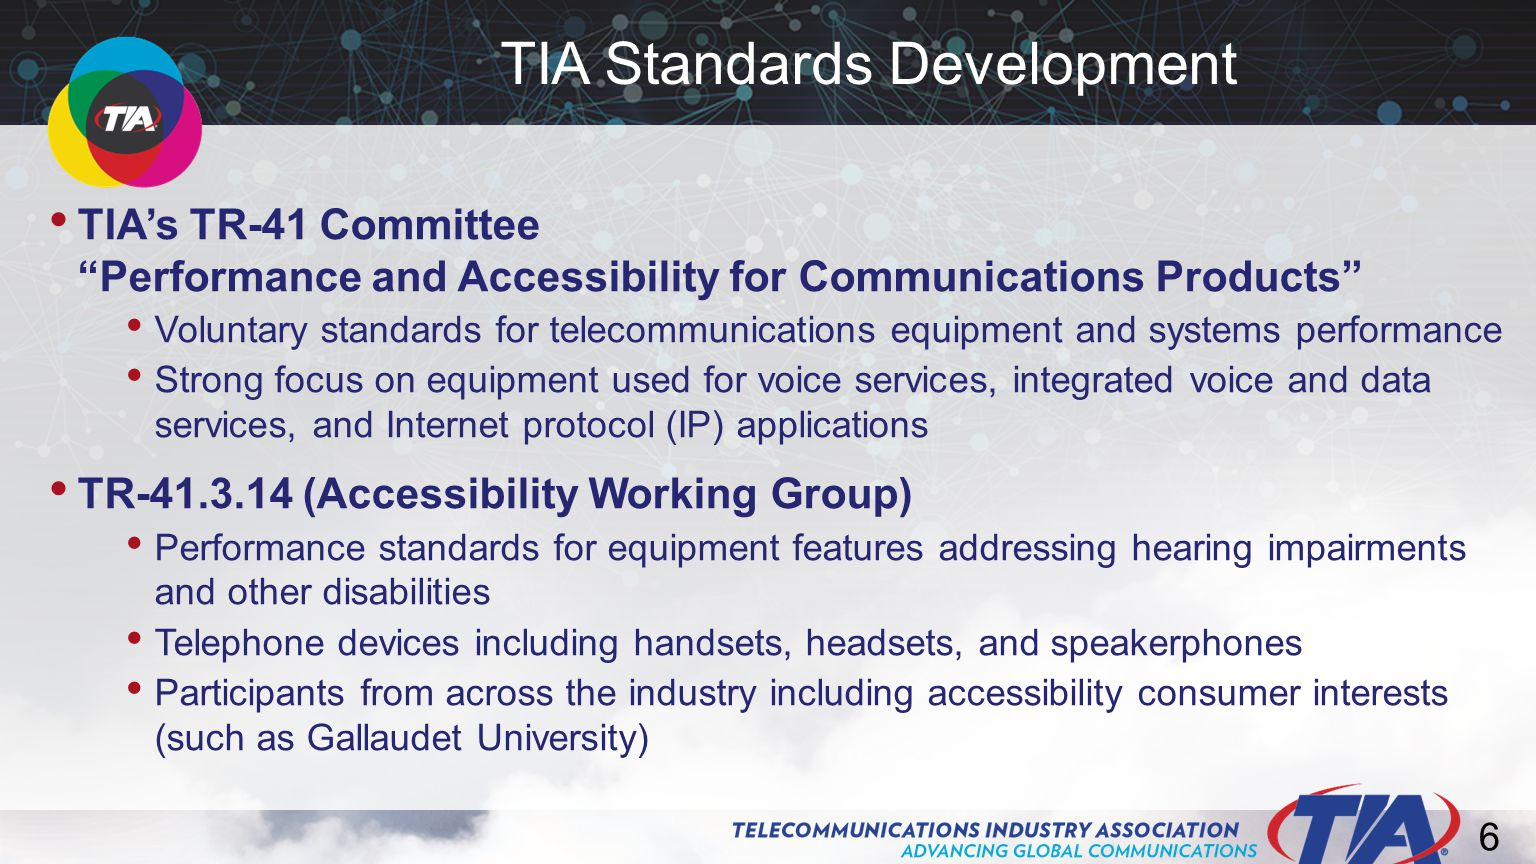 6 TIA's TR-41 Committee Performance and Accessibility for Communications Products Voluntary standards for telecommunications equipment and systems performance Strong focus on equipment used for voice services, integrated voice and data services, and Internet protocol (IP) applications TR-41.3.14 (Accessibility Working Group) Performance standards for equipment features addressing hearing impairments and other disabilities Telephone devices including handsets, headsets, and speakerphones Participants from across the industry including accessibility consumer interests (such as Gallaudet University) TIA Standards Development